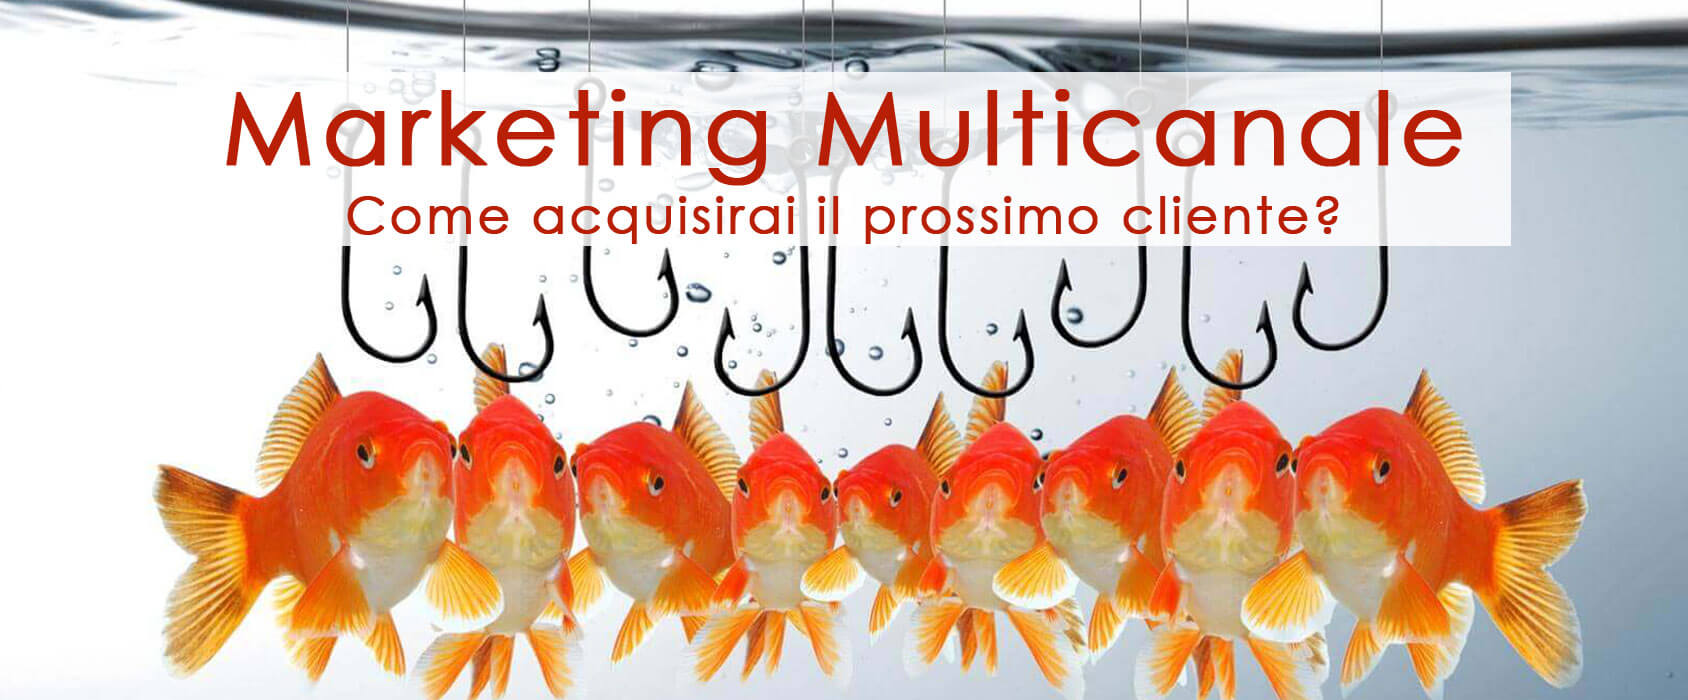 slider-marketing-multicanale